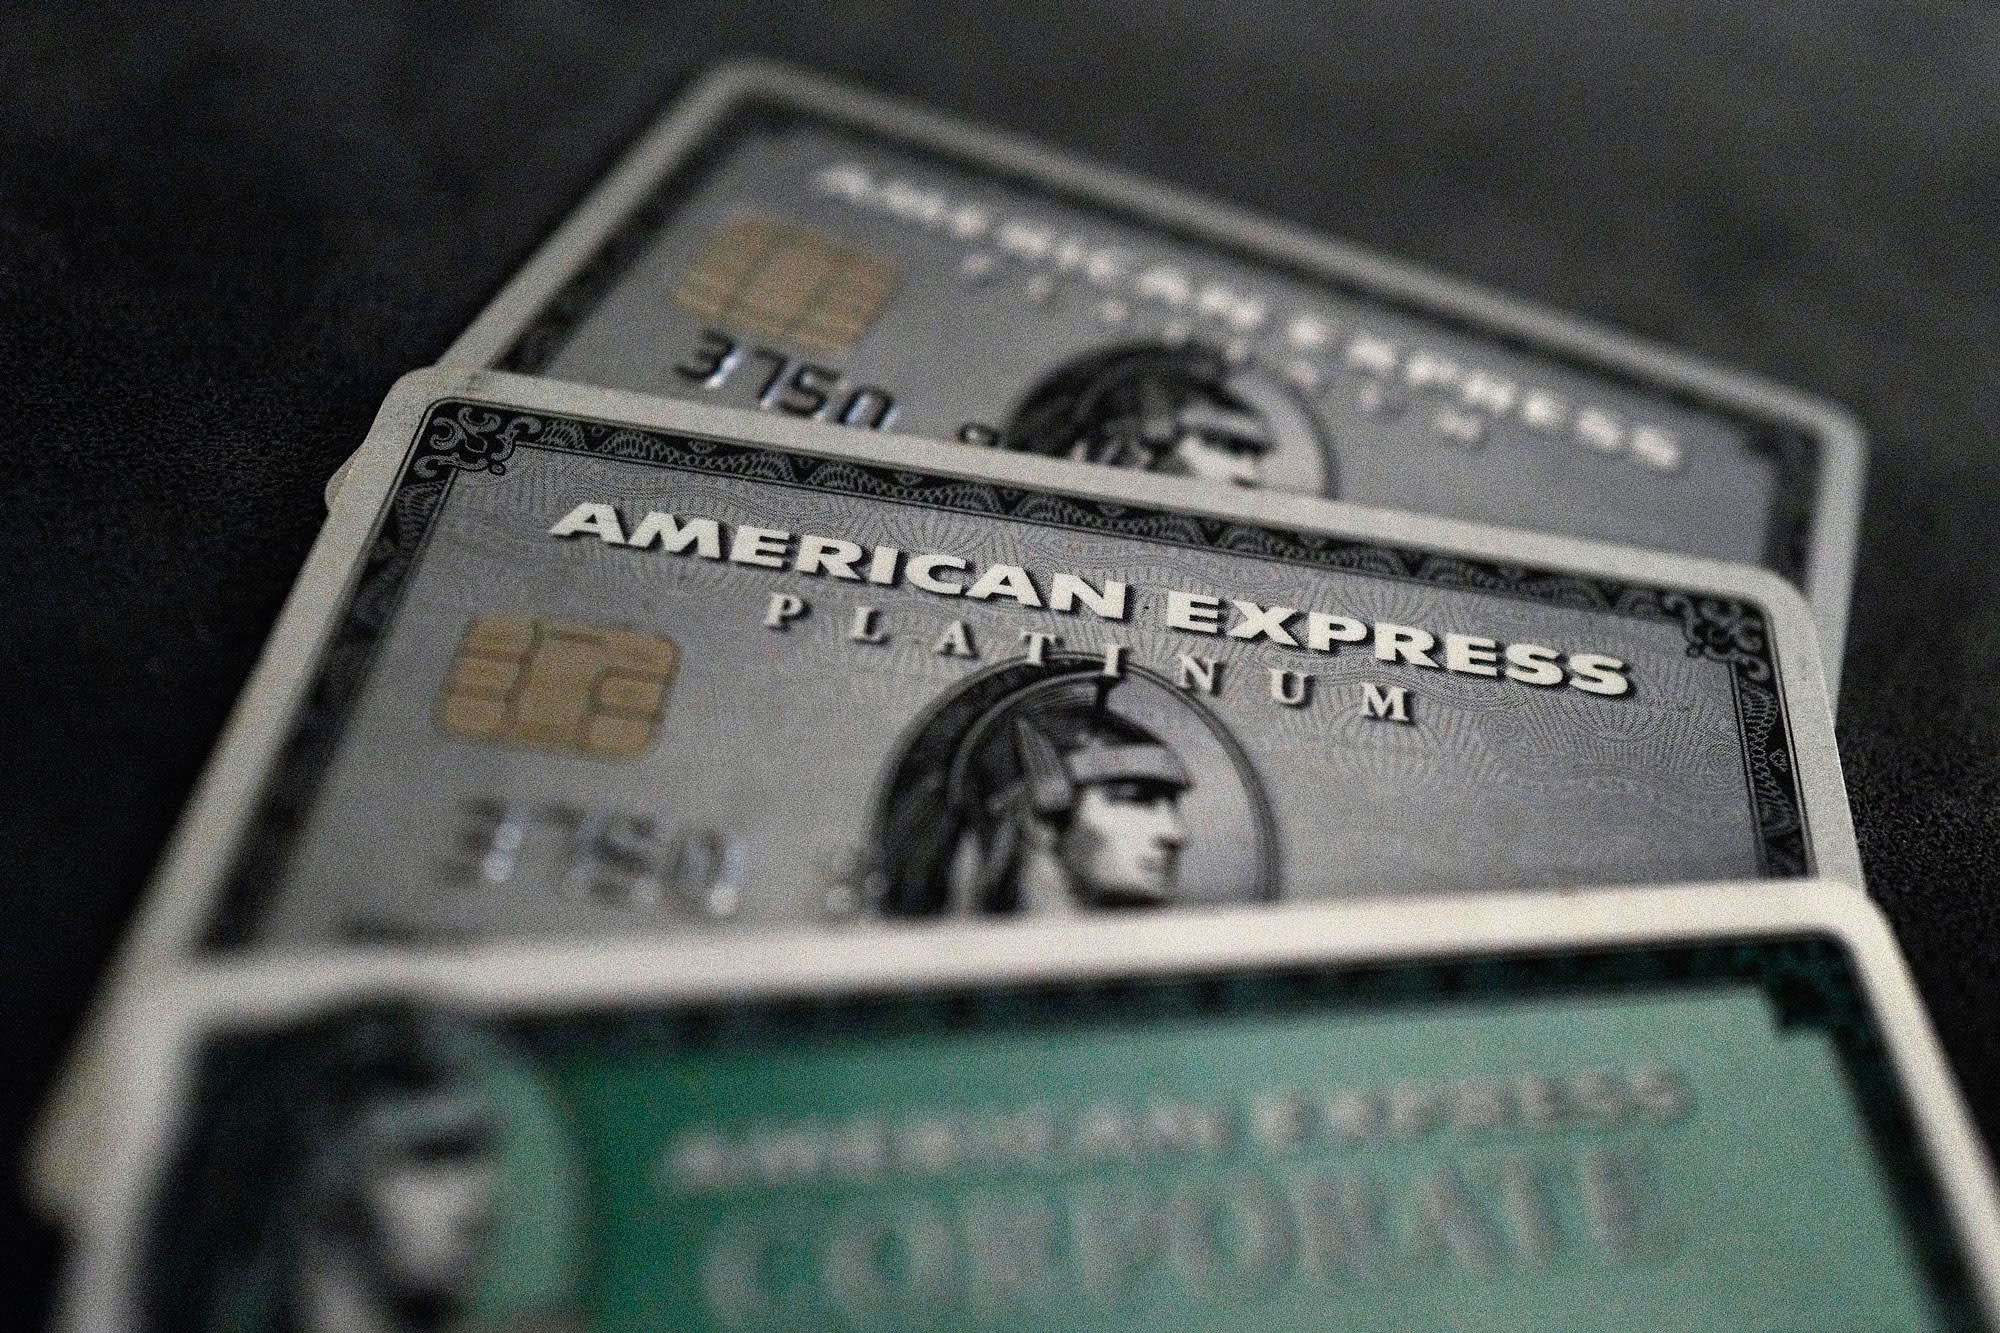 American Express earnings, manufacturing gauge, stock update: 3 things to watch for on Friday